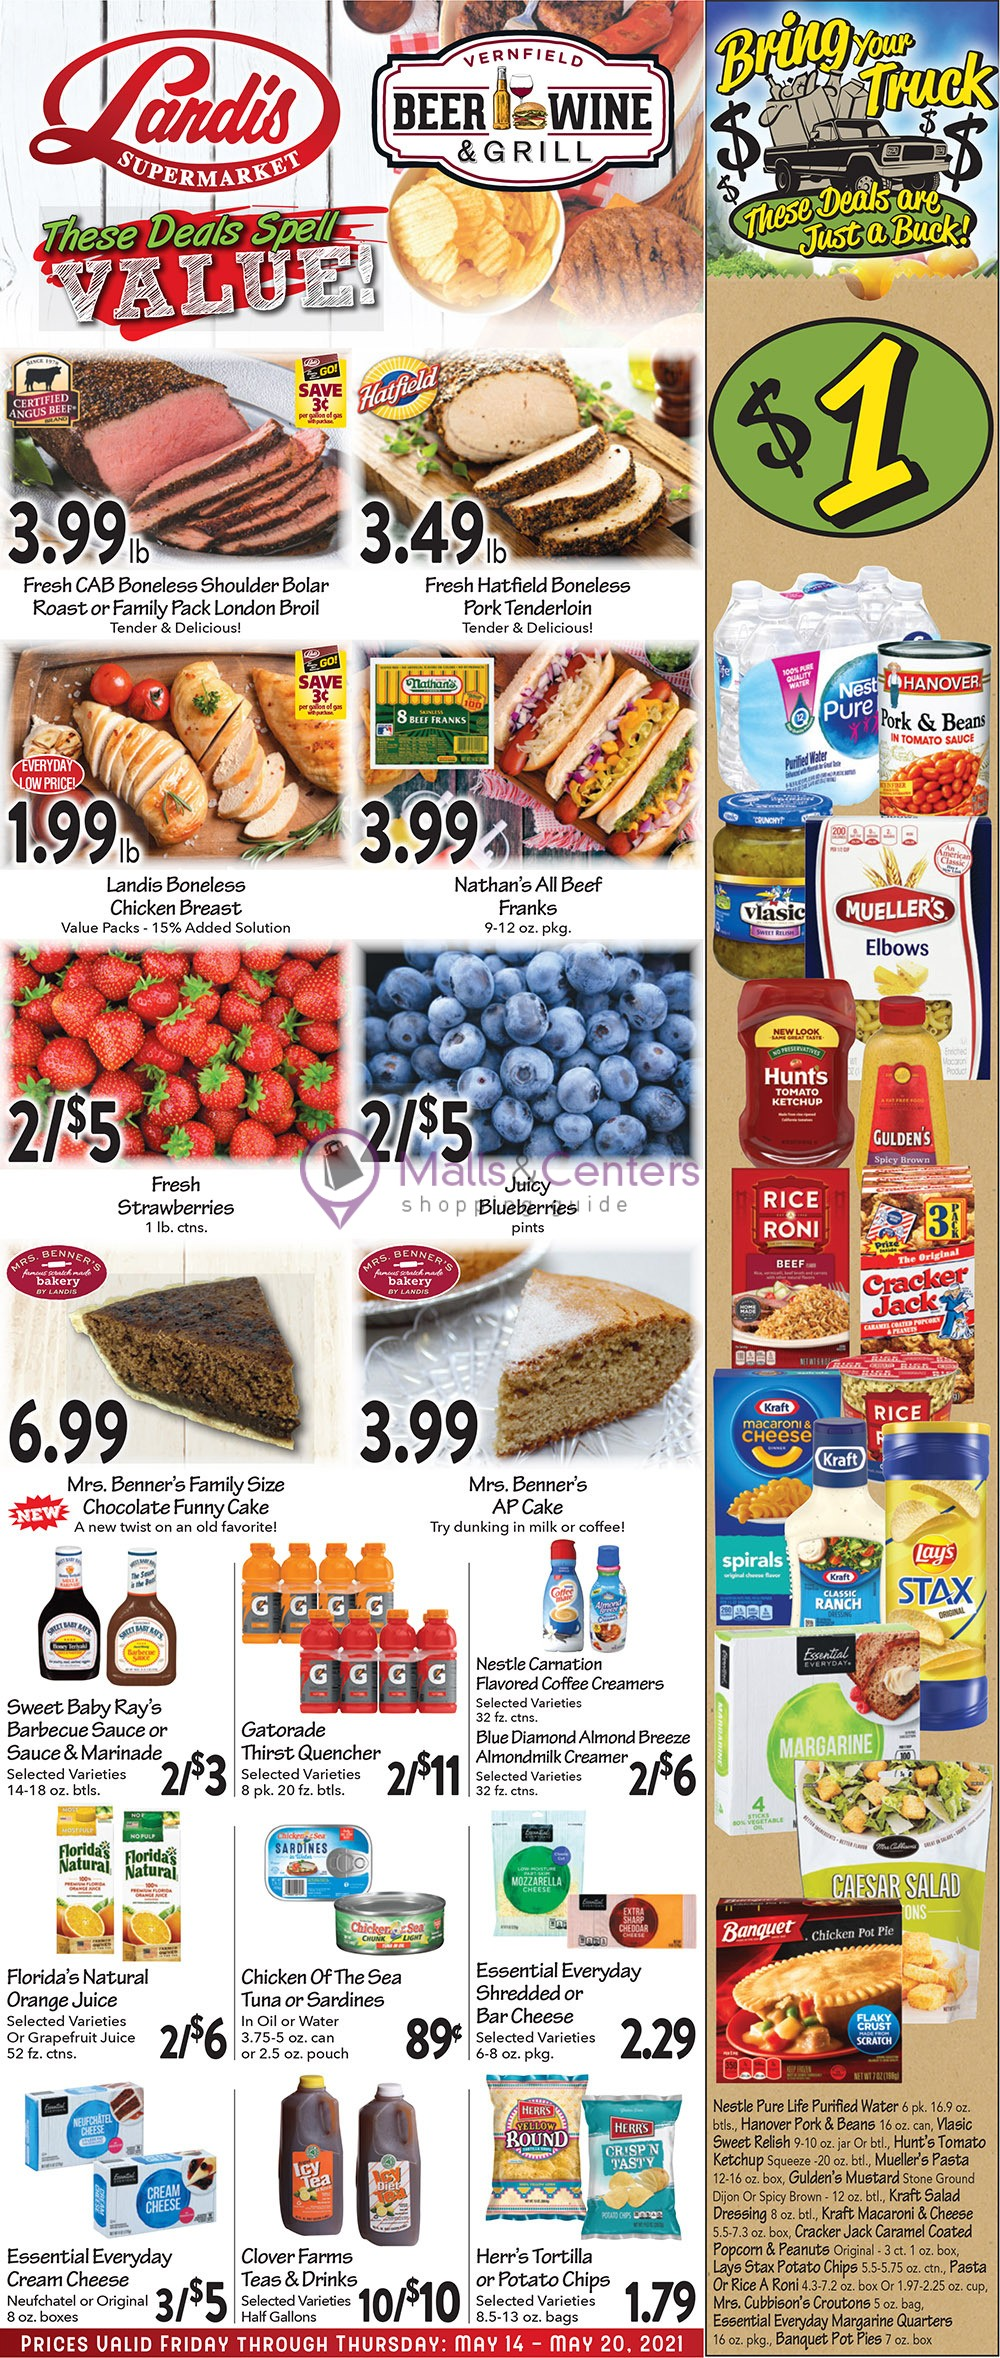 weekly ads Landis Supermarket - page 1 - mallscenters.com